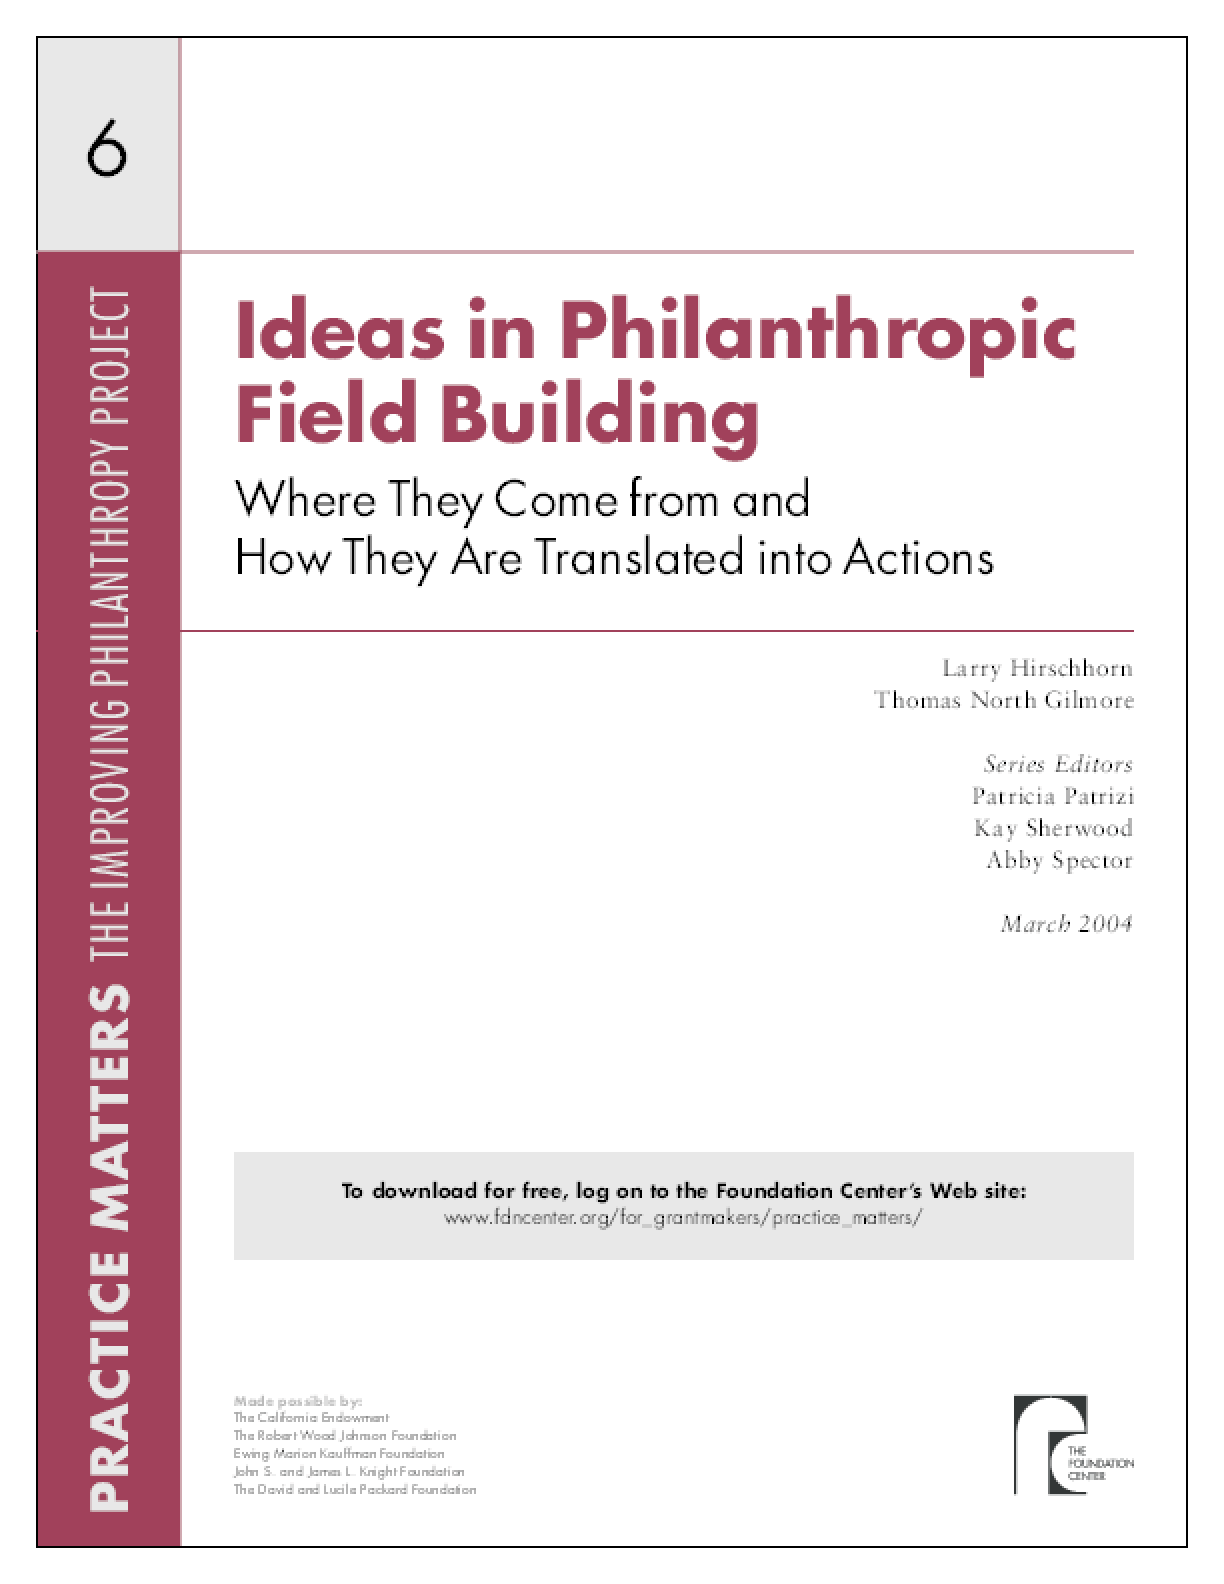 Ideas in Philanthropic Field-Building: Where They Come From and How They Are Translated Into Actions